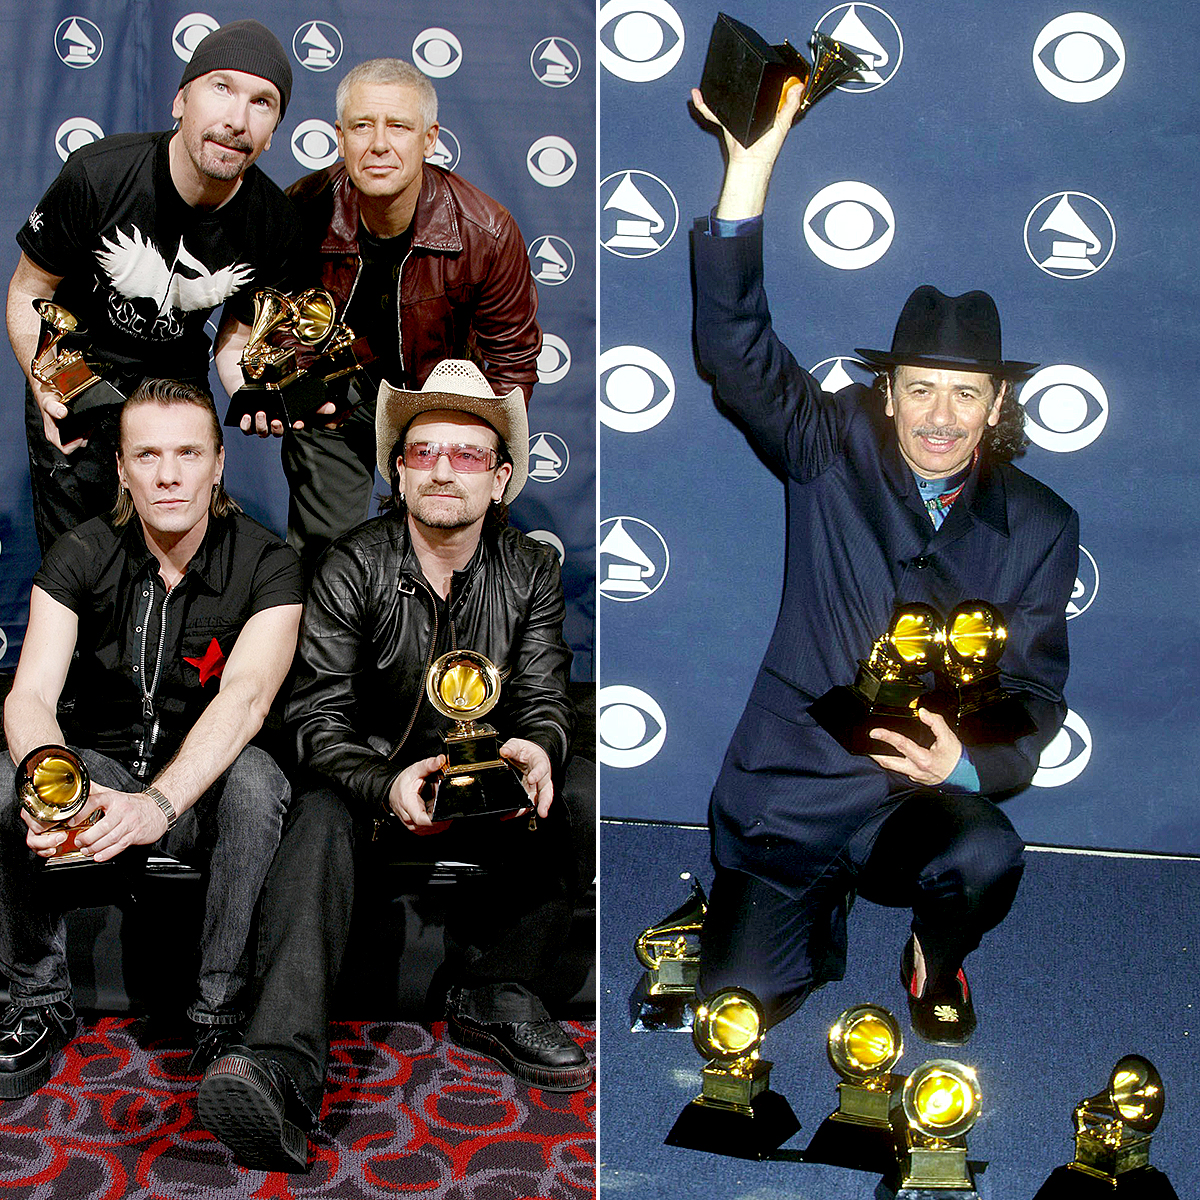 u2-santana-grammy-awards - U2's How to Dismantle an Atomic Bomb and Santana's Supernatural both received a record nine Grammy wins. In fact, the U2 album won three in 2005 and another six the following year.